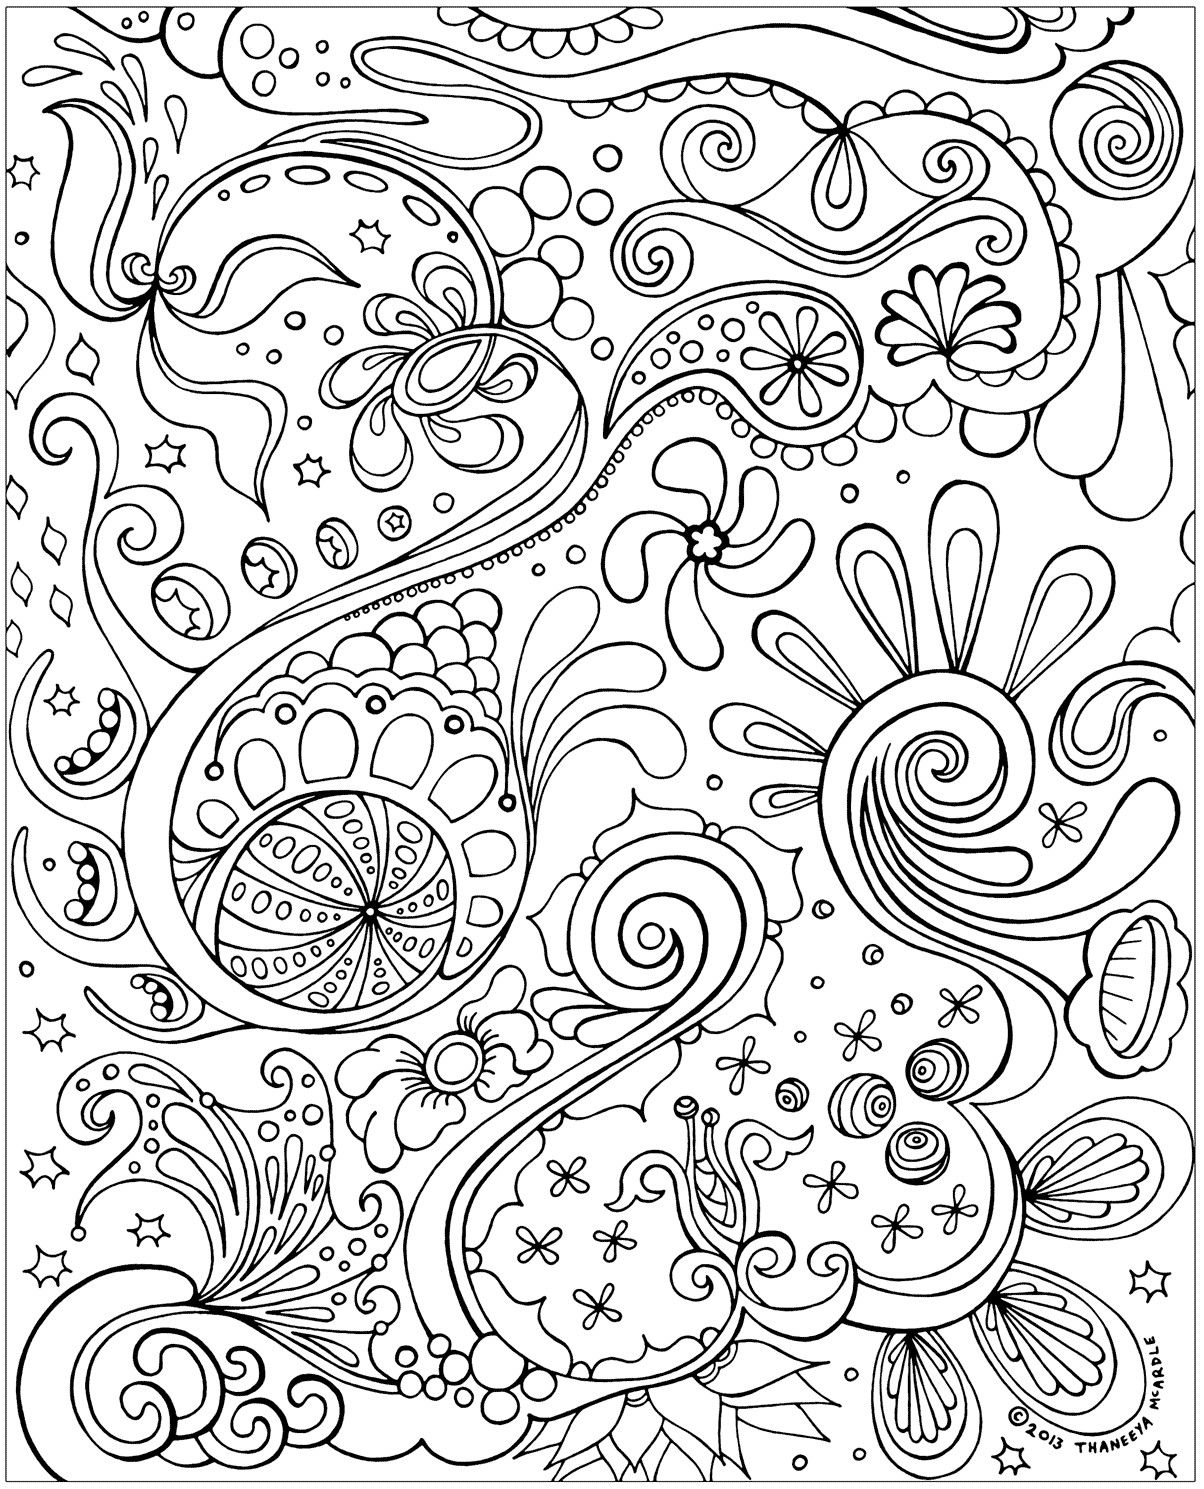 Free Coloring Pages For Adults To Print 240